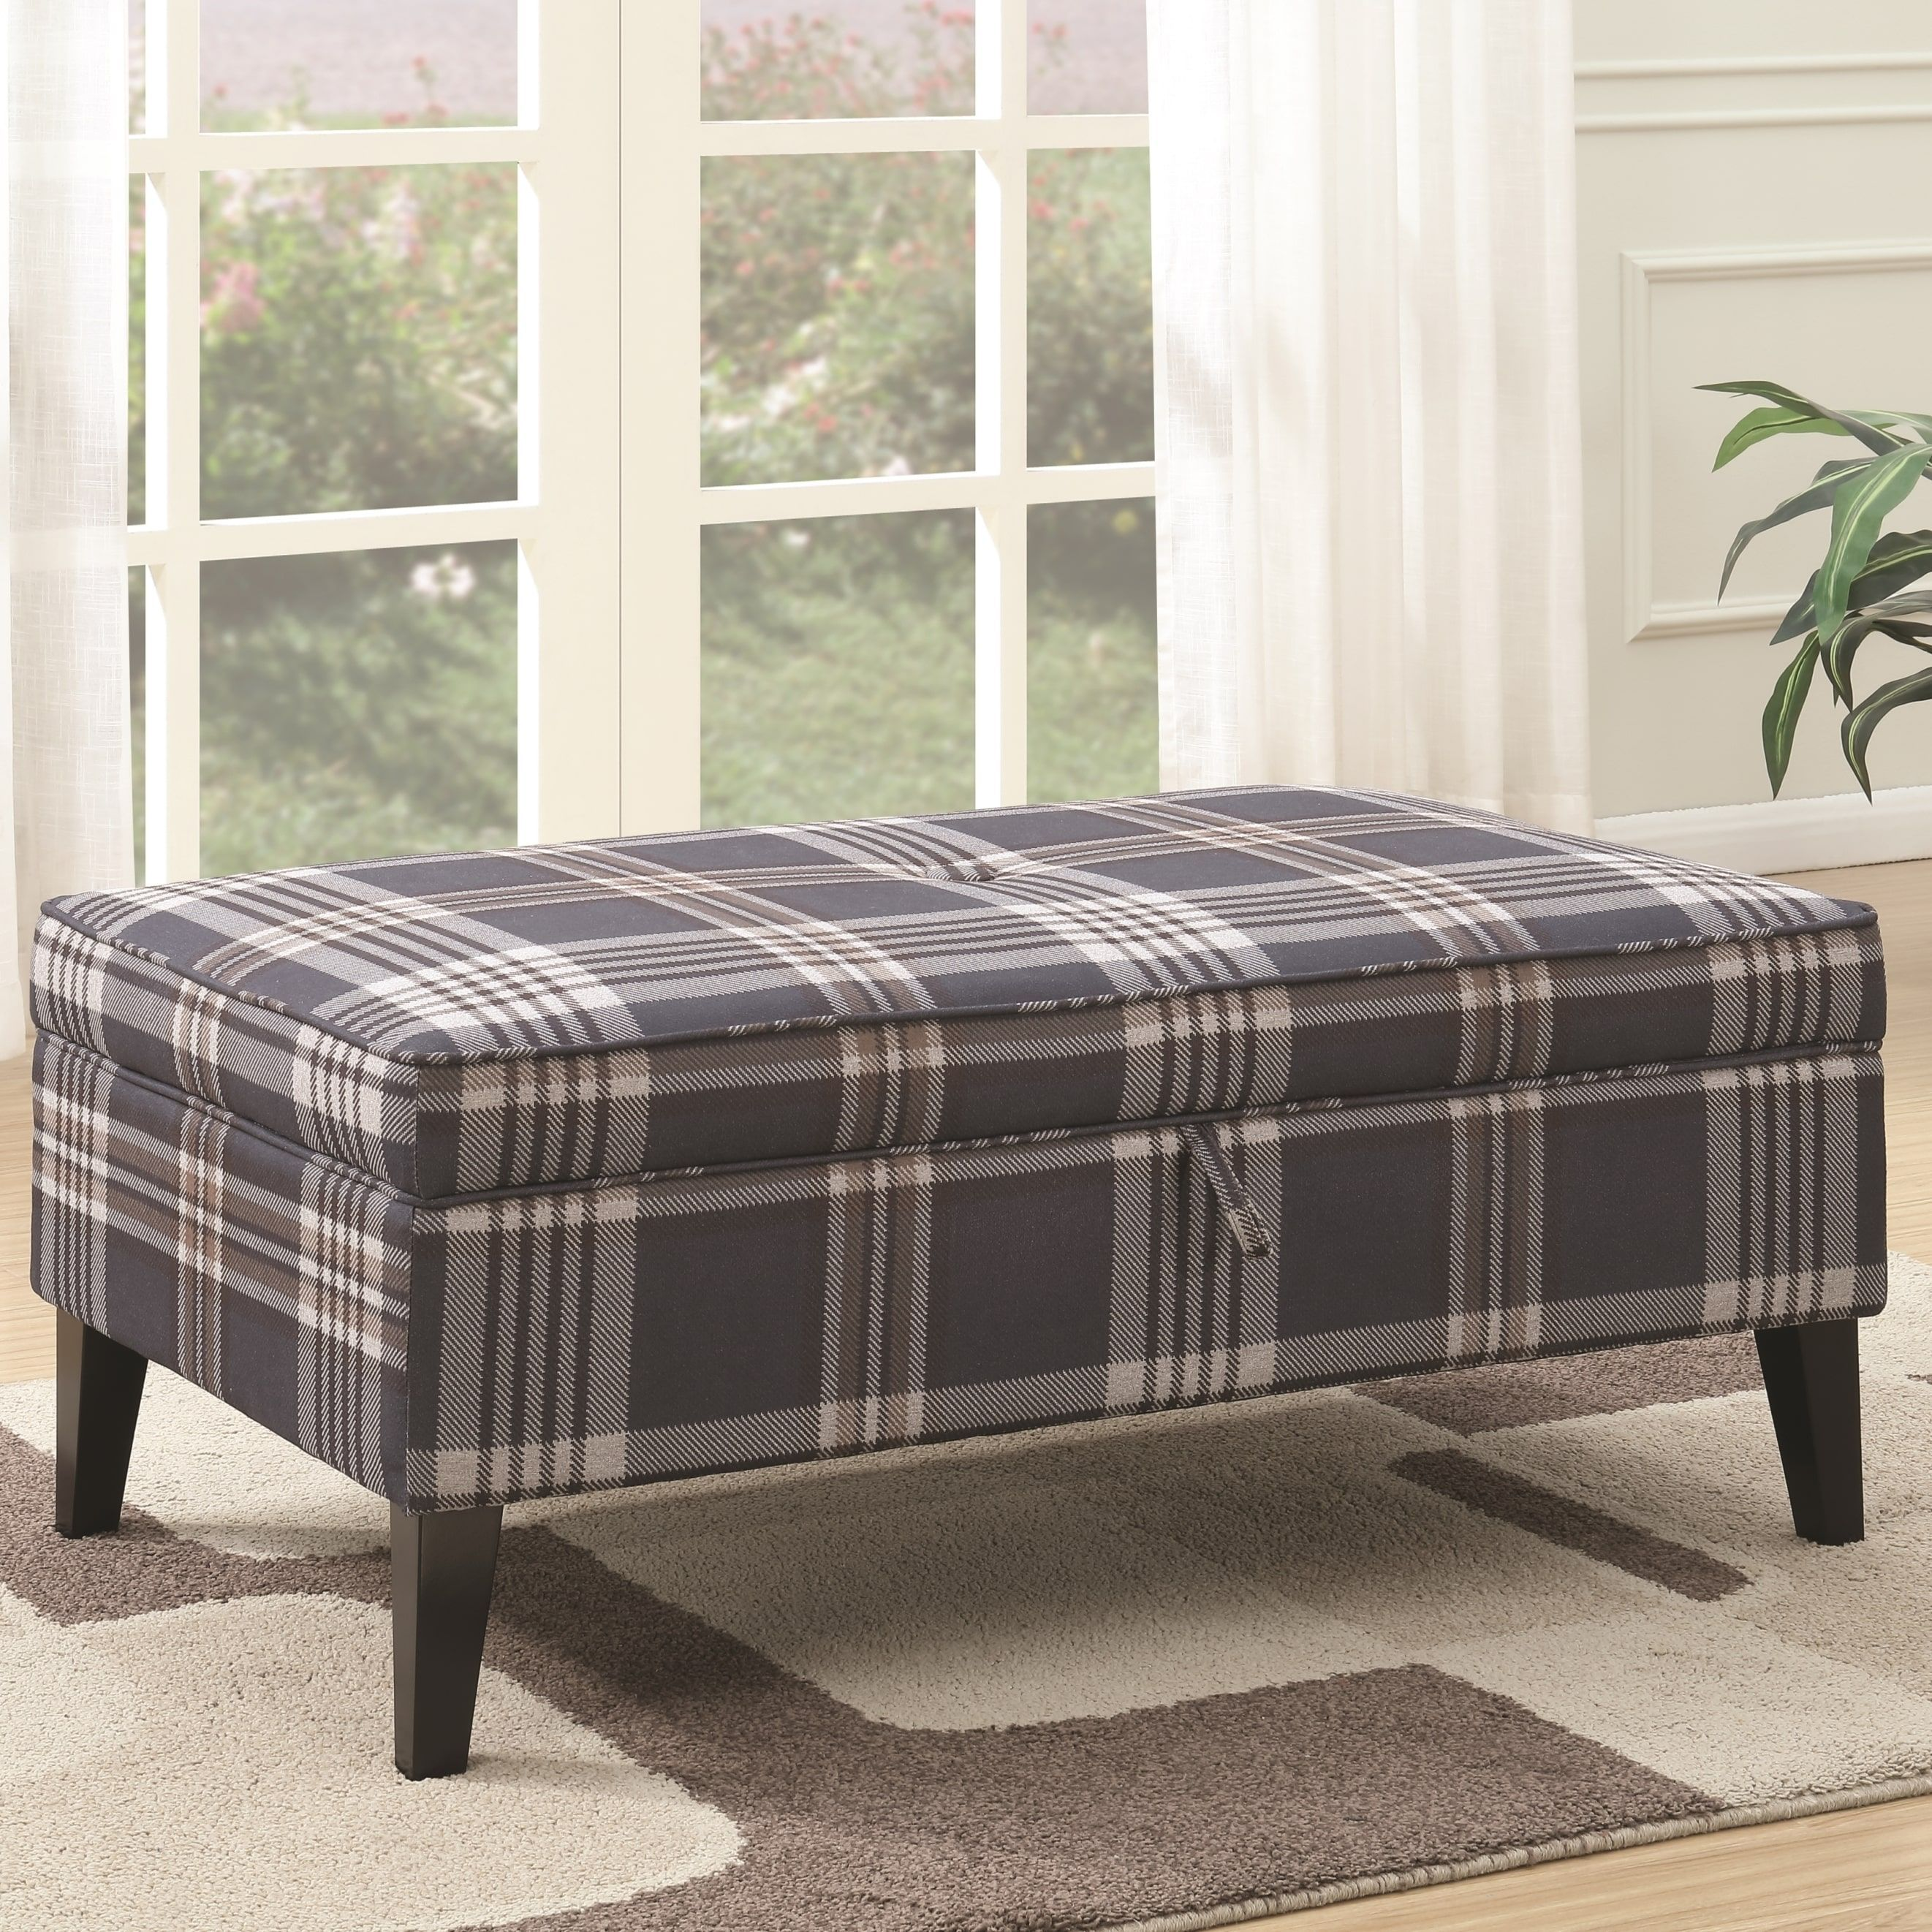 benches vermont natural furniture living livings bench copeland for related essentials more product hardwood from essentialsbench collection room